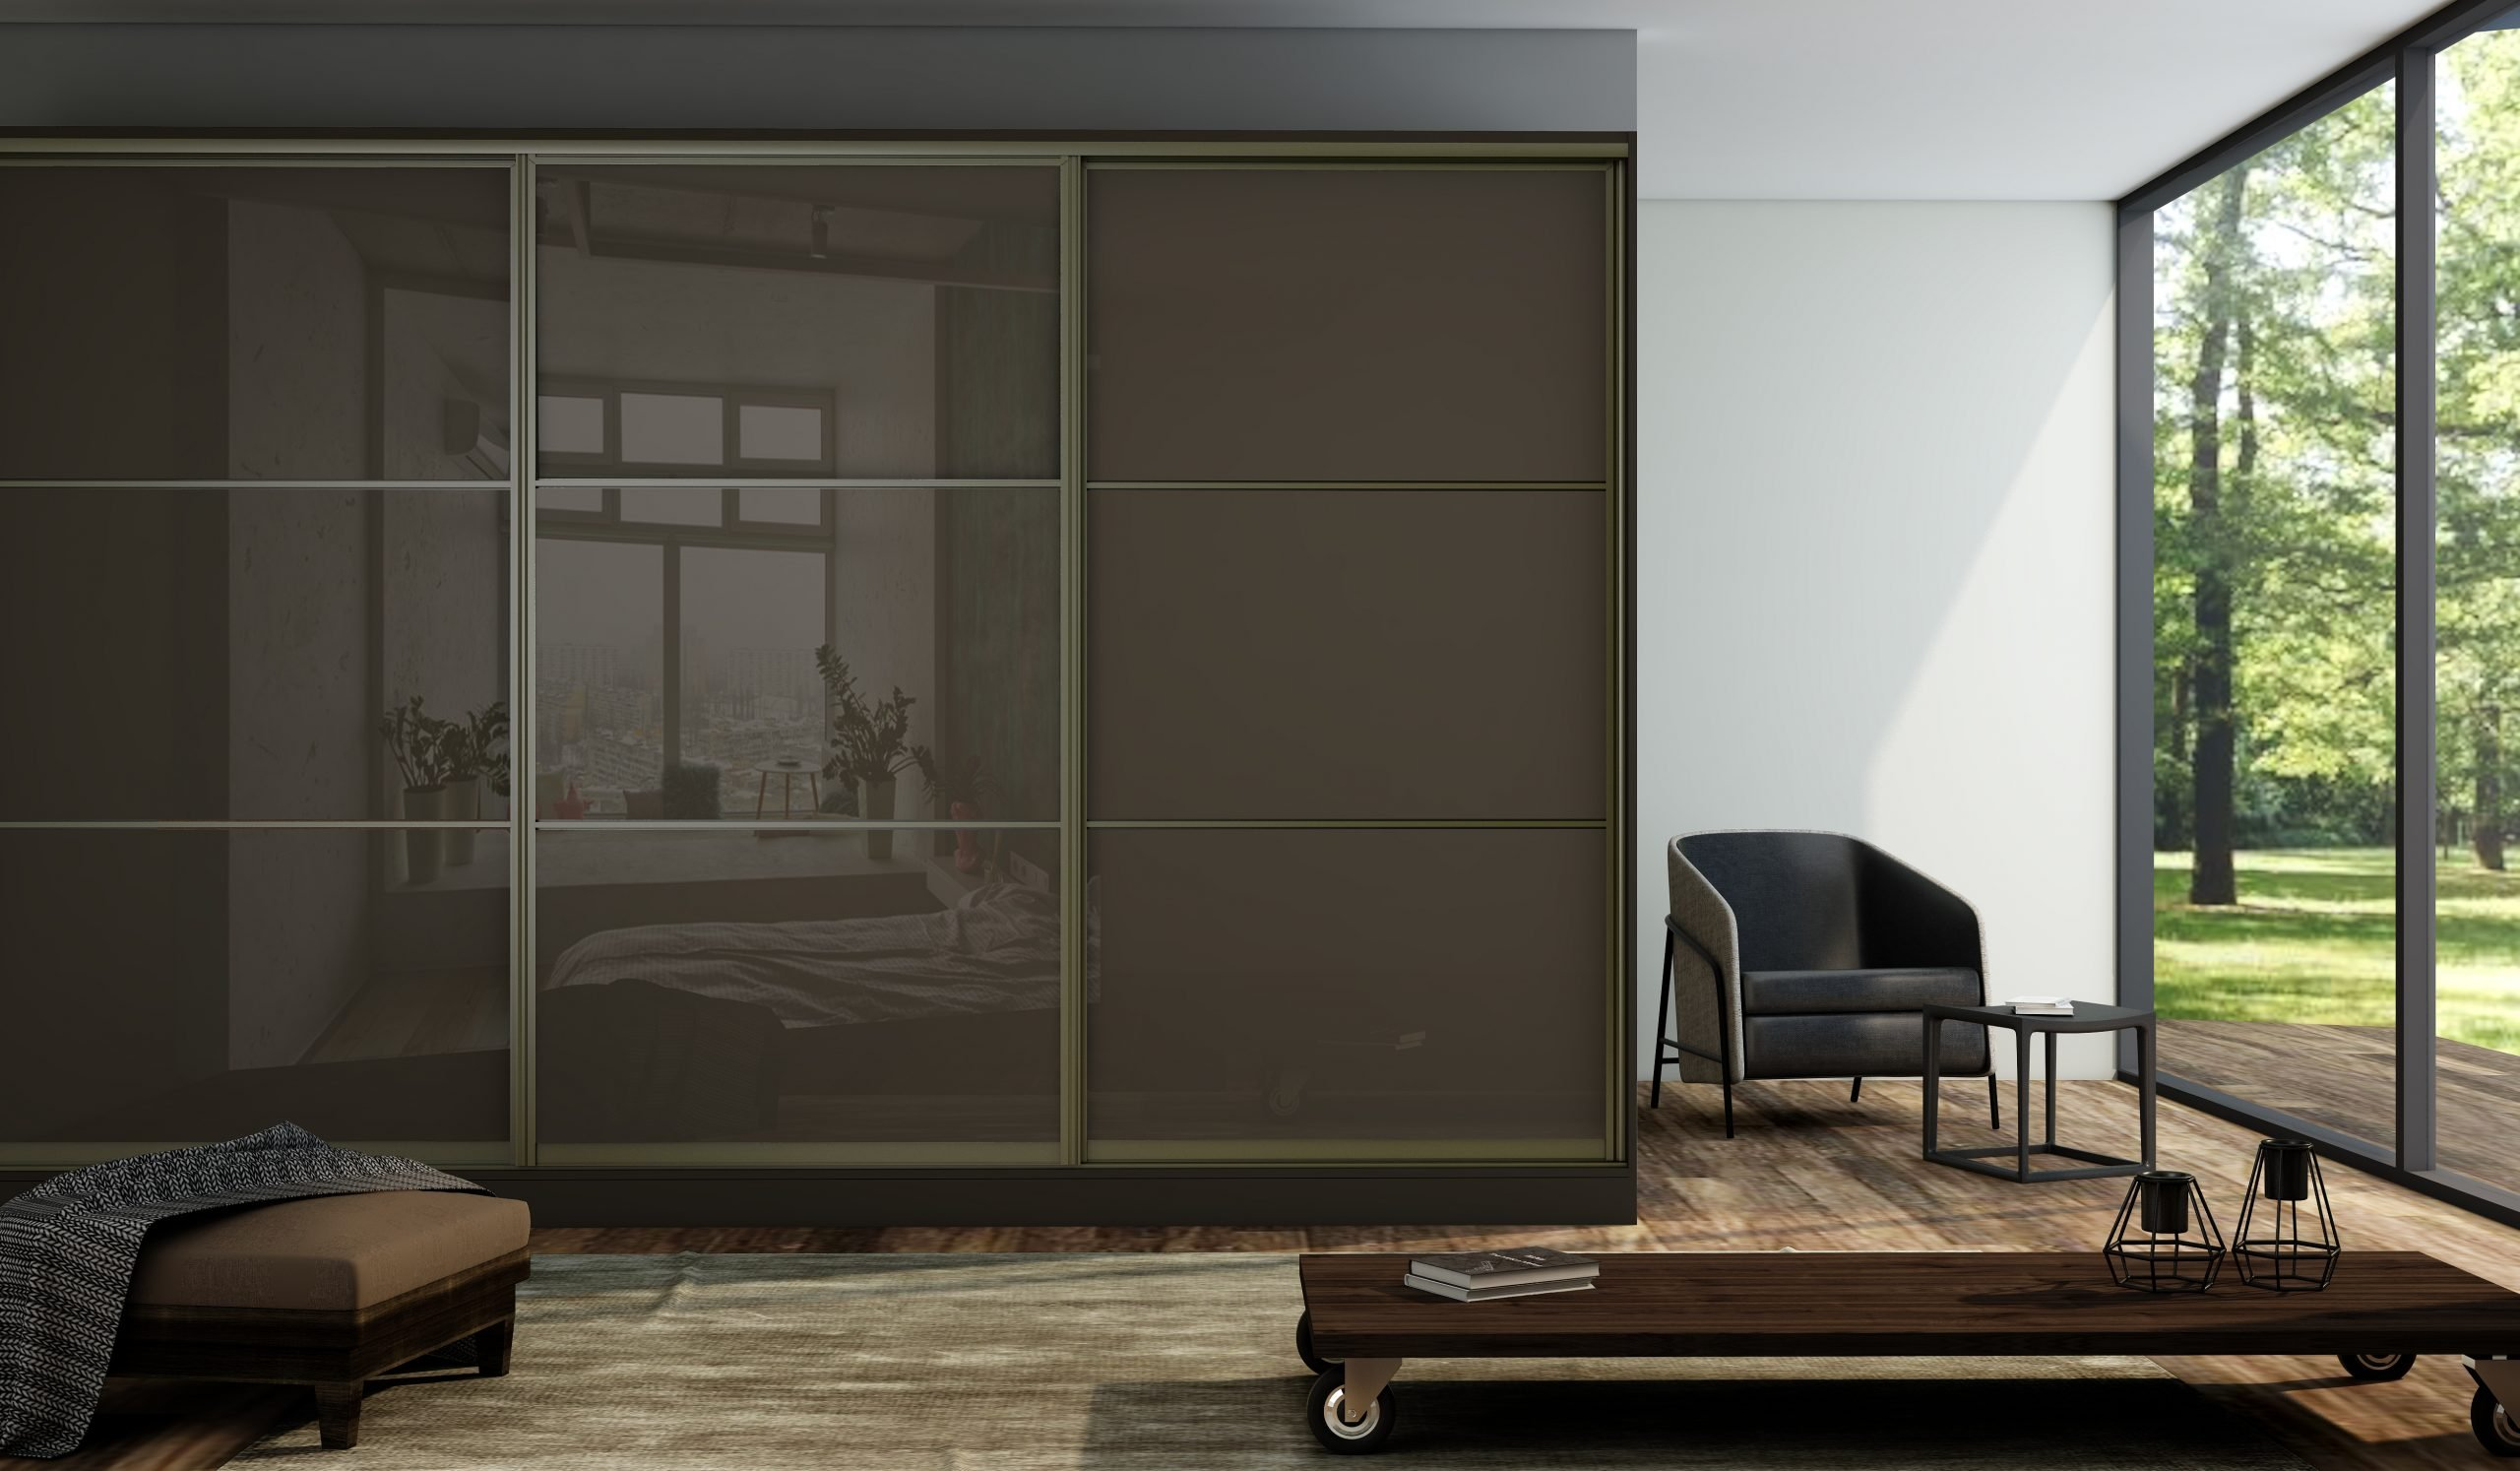 Sliding Fitted Framed Wardrobe With Three Panels in Brown Gloss Finish